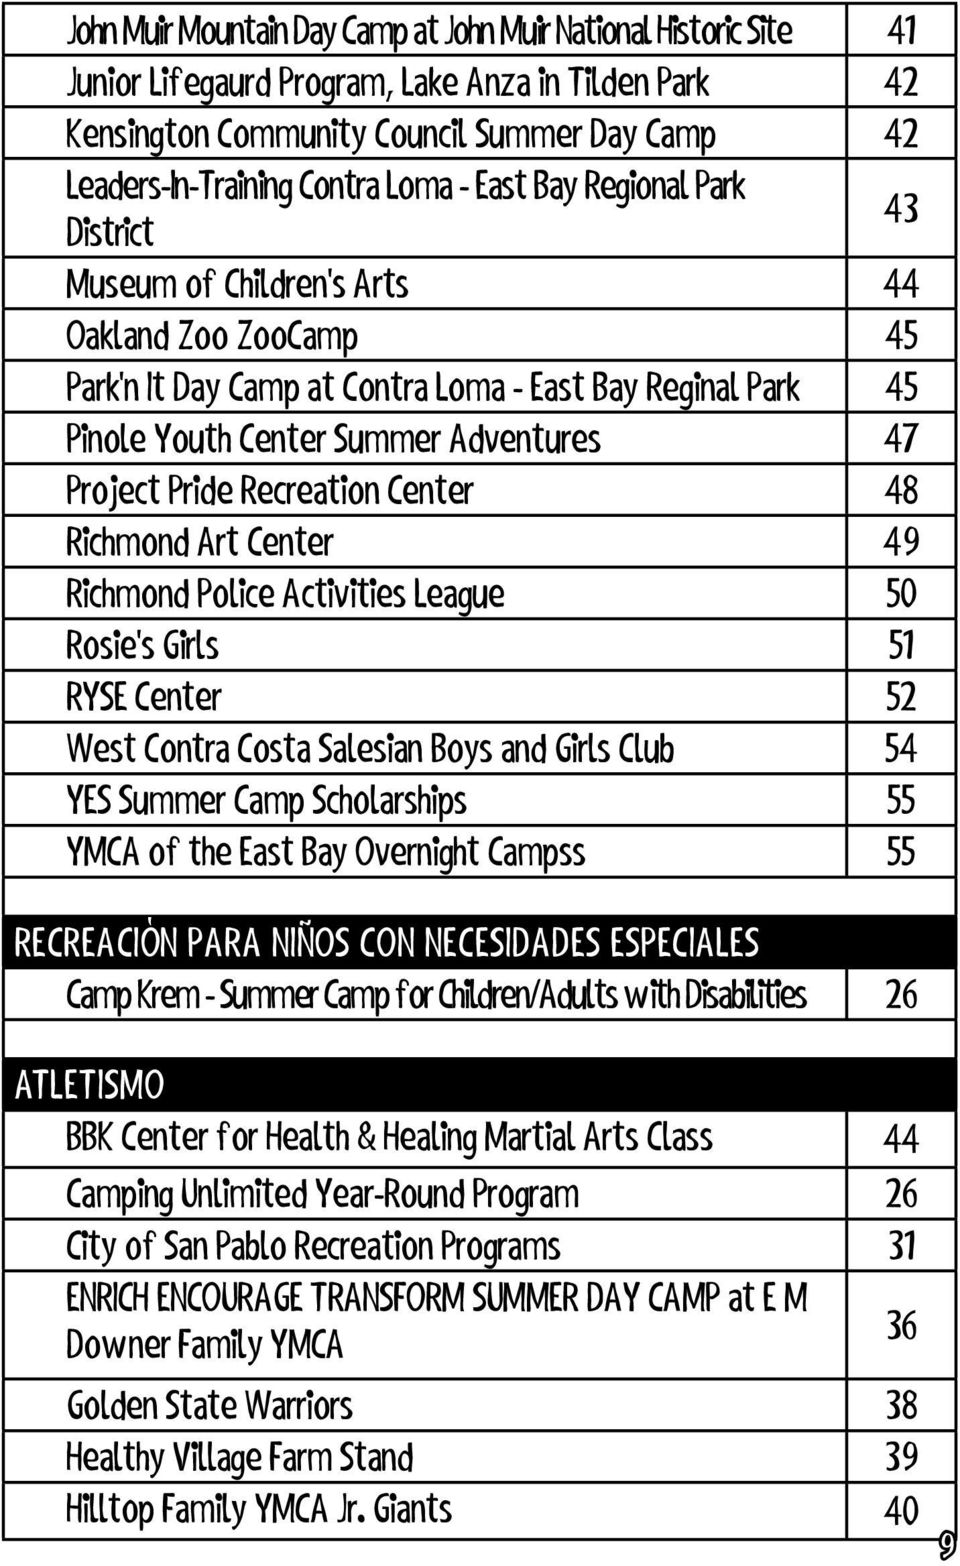 Project Pride Recreation Center 48 Richmond Art Center 49 Richmond Police Activities League 50 Rosie's Girls 51 RYSE Center 52 West Contra Costa Salesian Boys and Girls Club 54 YES Summer Camp